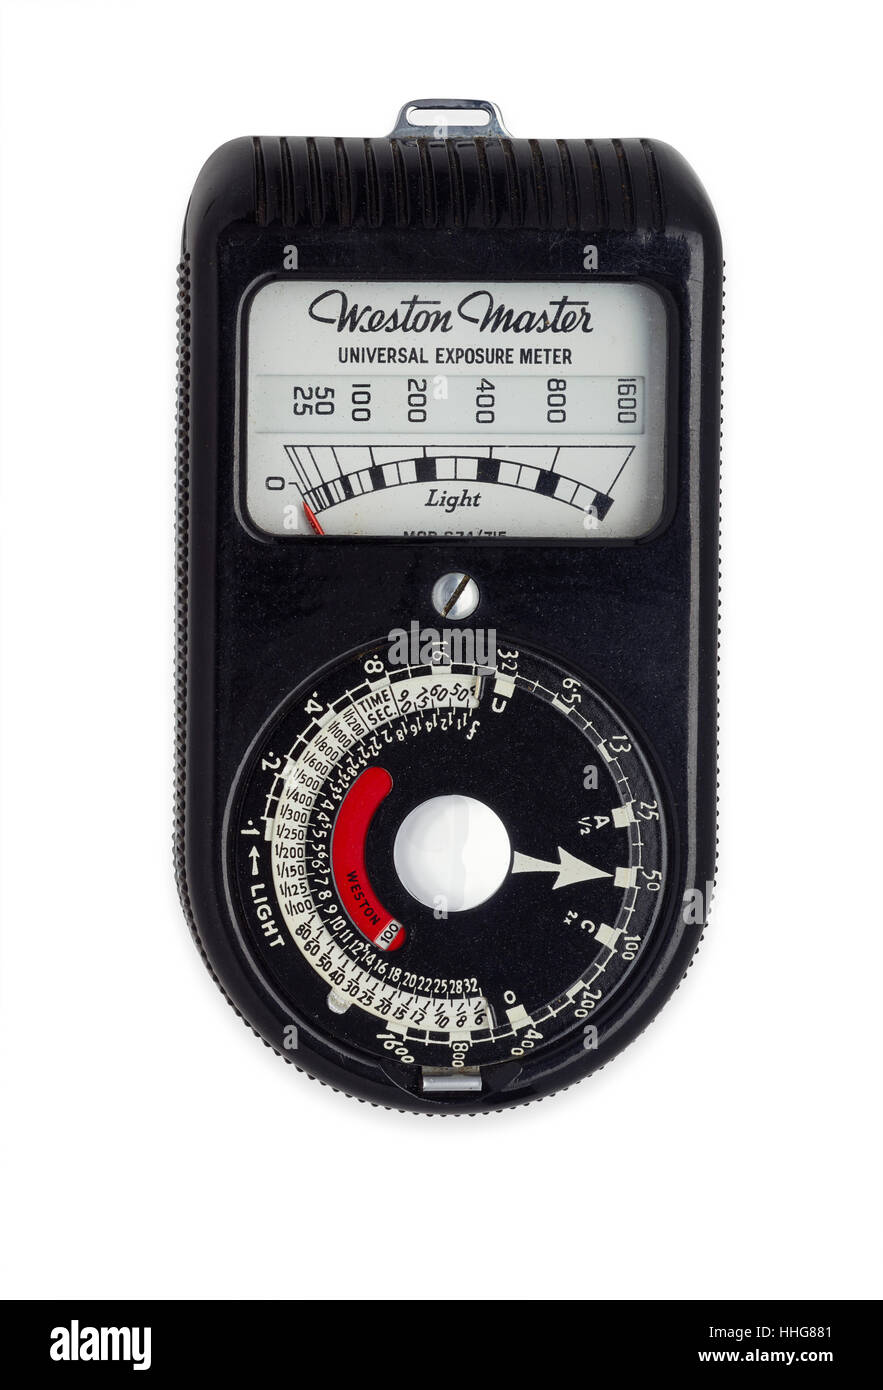 Weston Master 1951 light meter - Stock Image